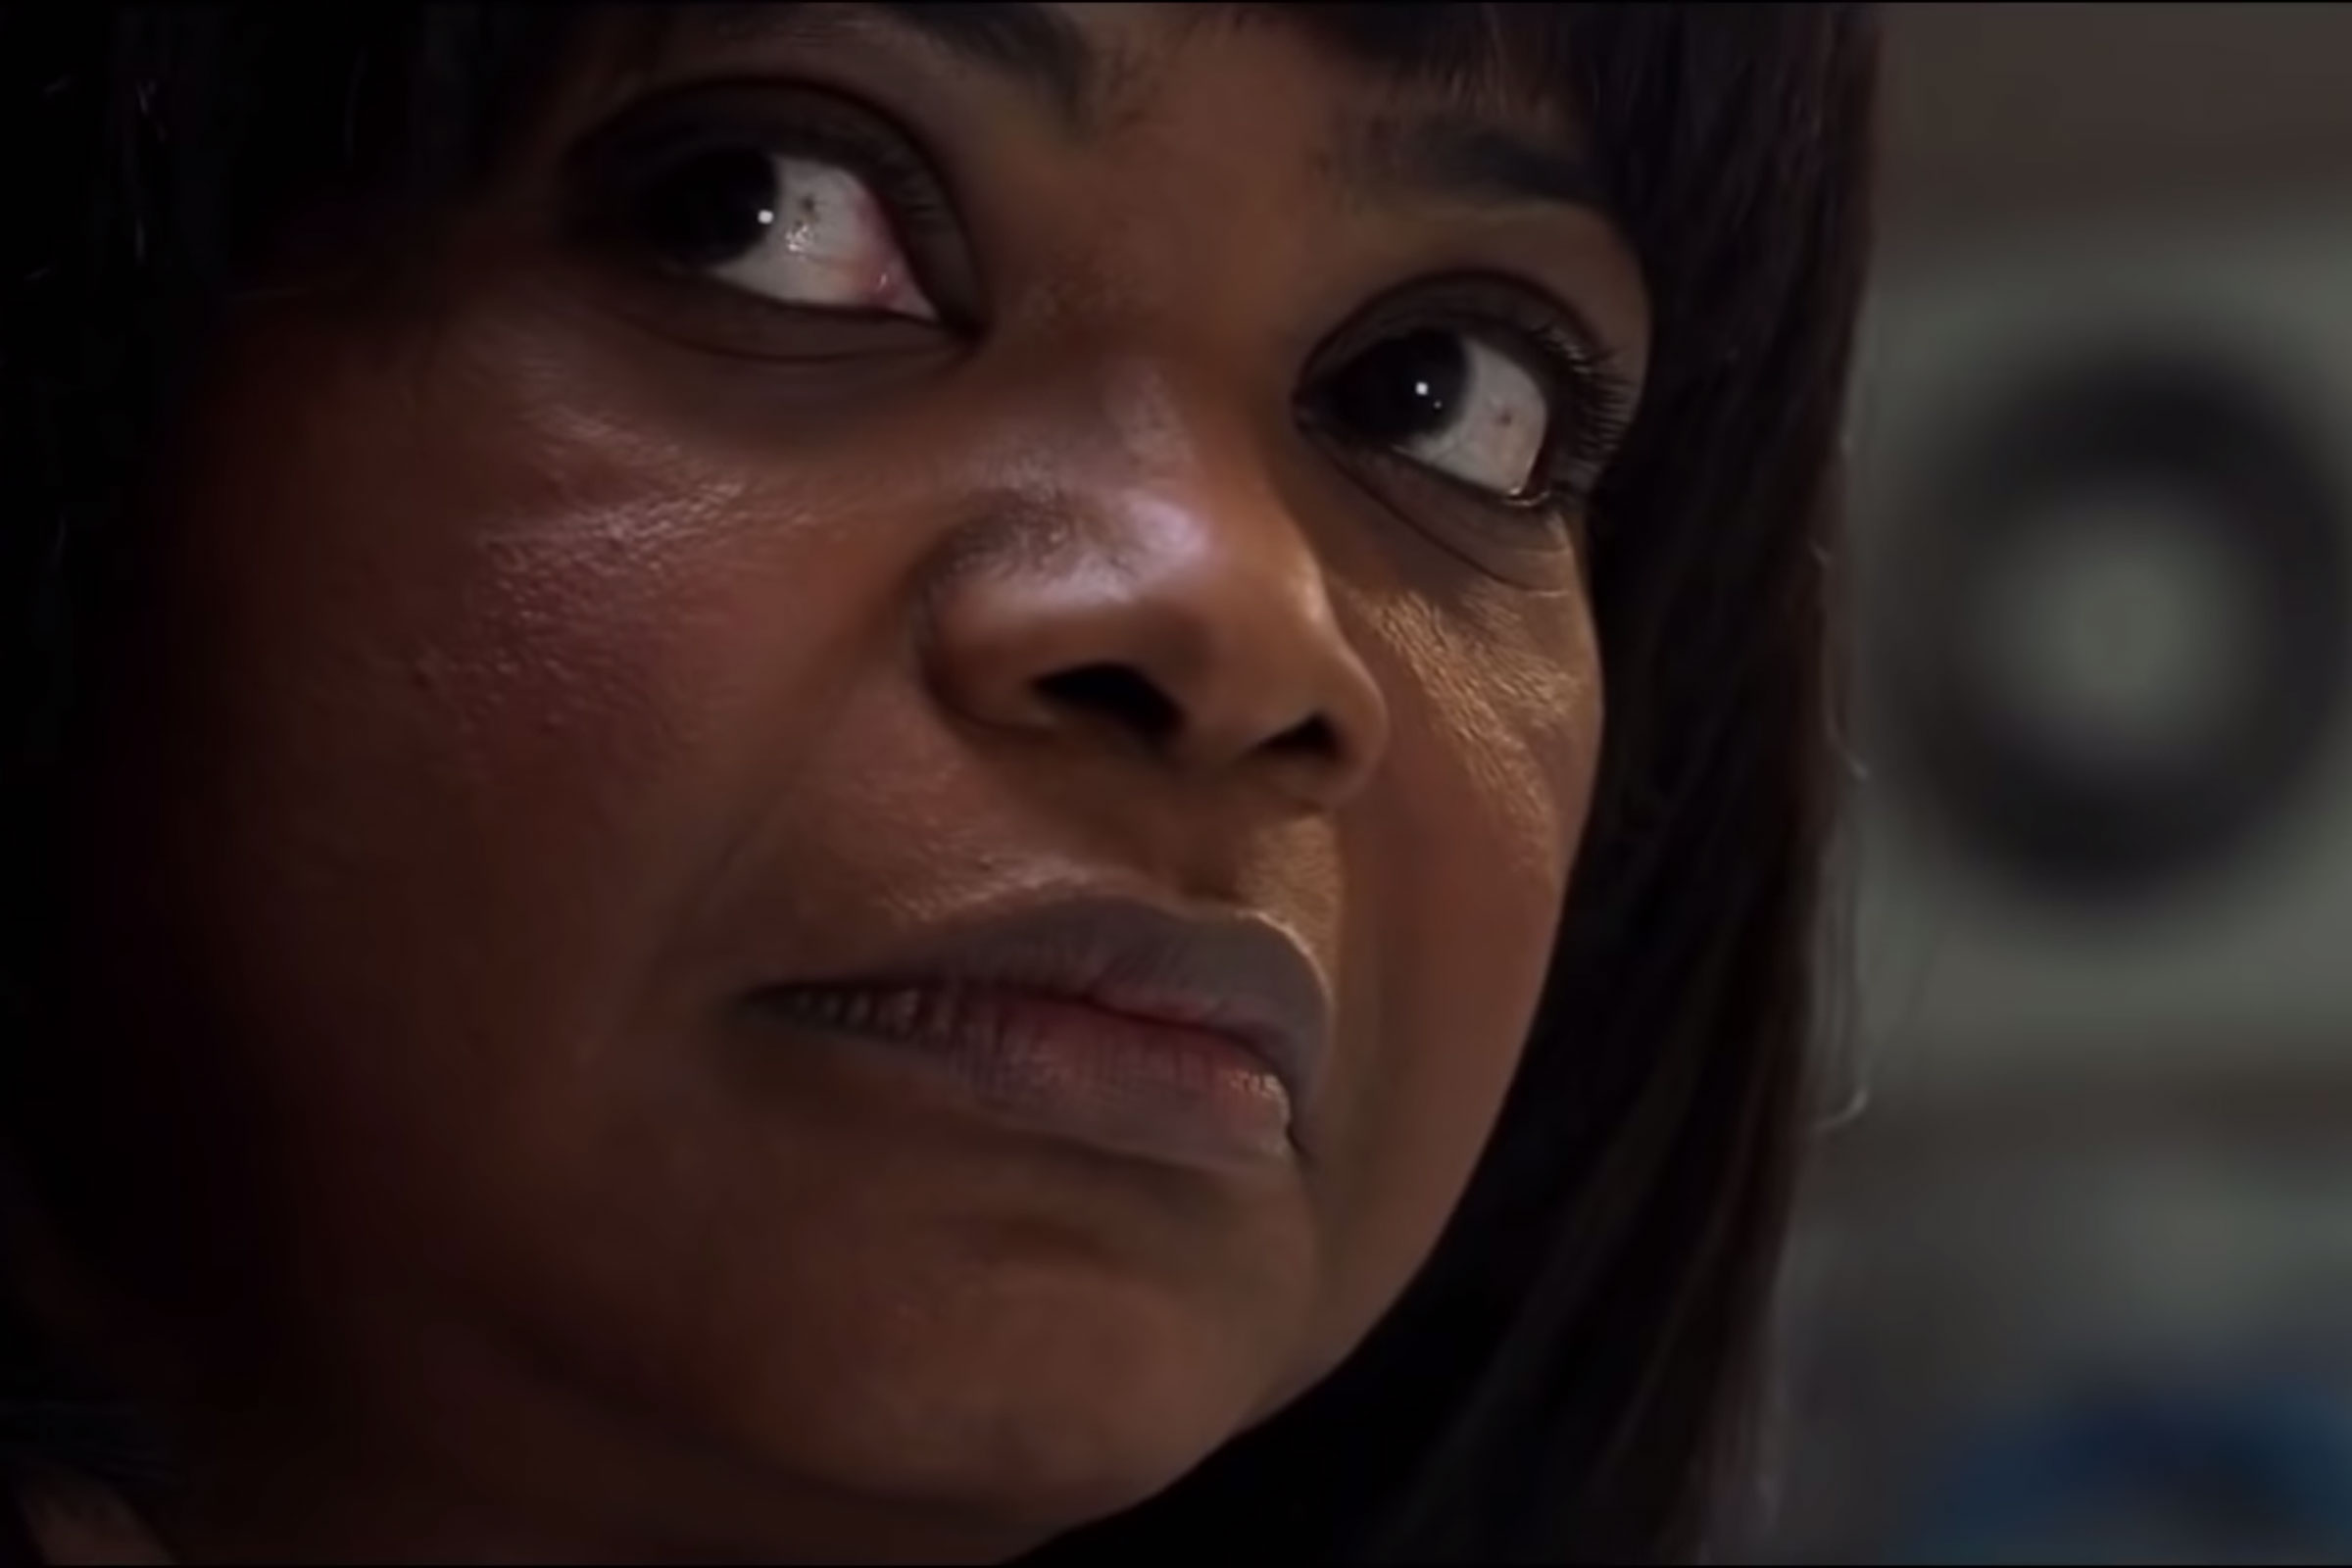 close-up photo of a Black woman with short, black hair looking ominously off-screen